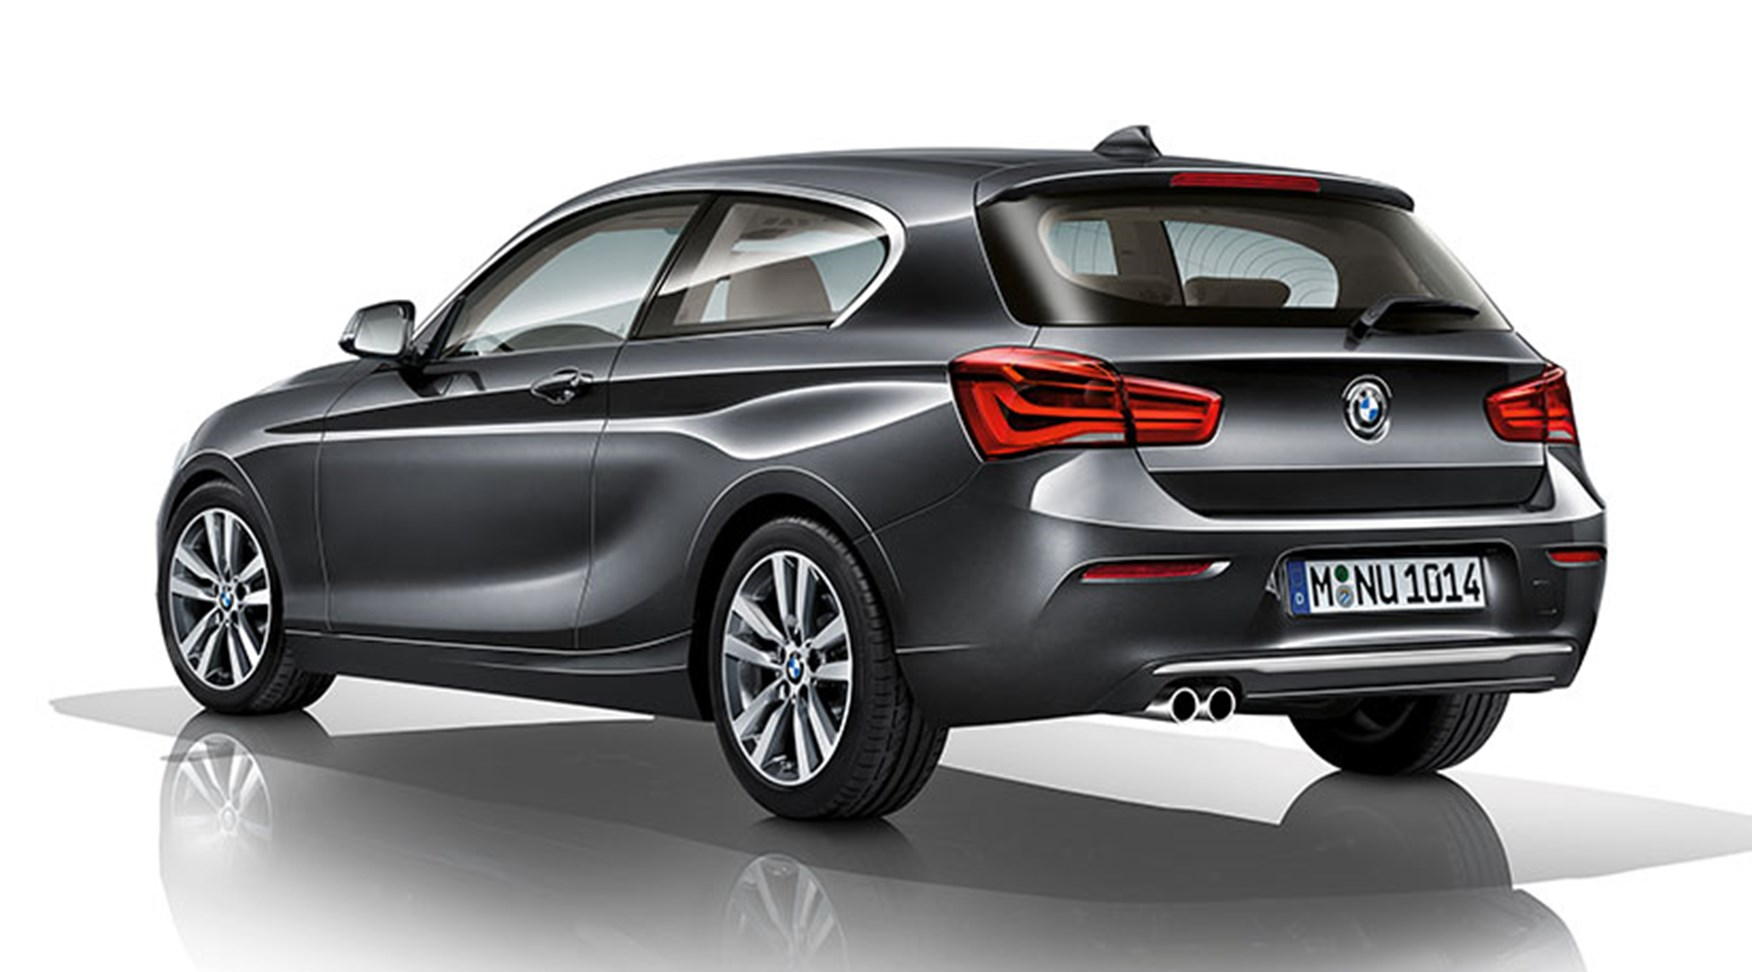 Bmw 1 Series New Model Release Date >> Bmw 1 Series 2015 Facelift Is Here With Prettier Face By Car